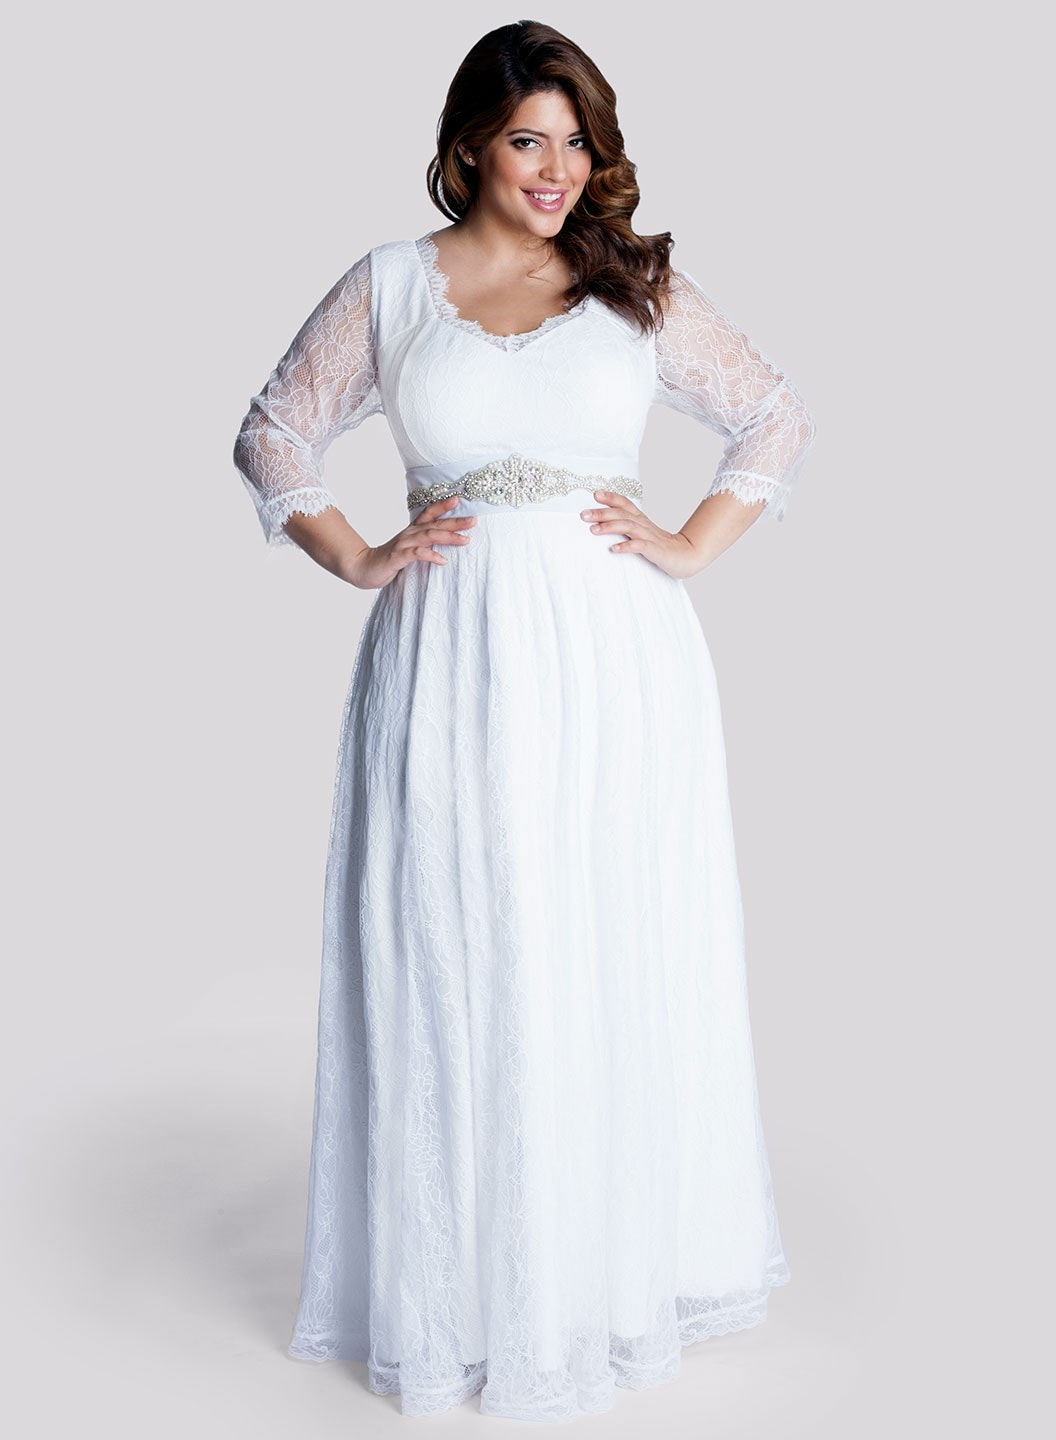 9ad1d7e3fec 25 Stunning Plus-Size Wedding Dresses For Every Style Of Nuptial .